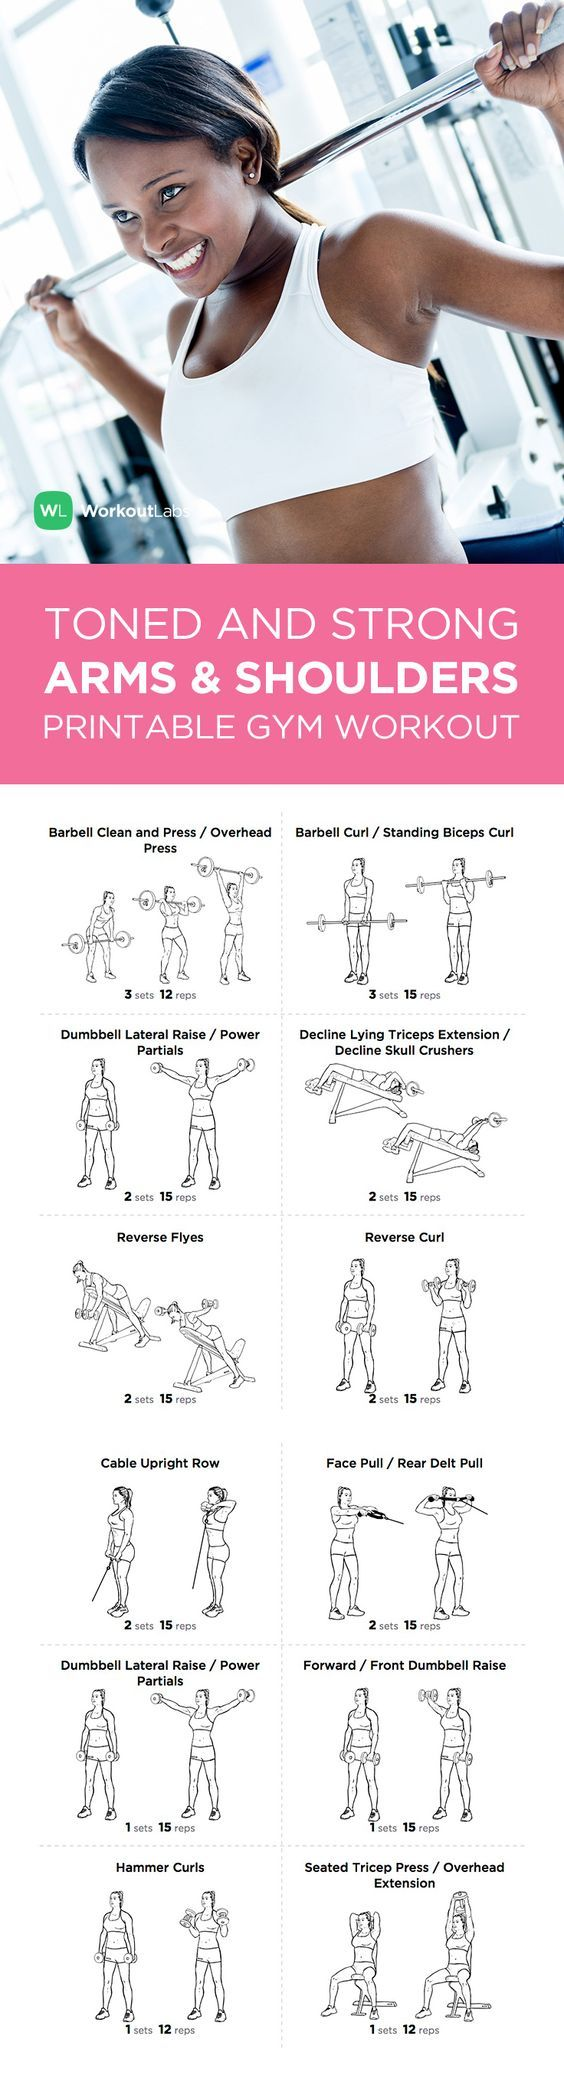 Visit http://WorkoutLabs.com/workout-plans/toned-strong-arms ...